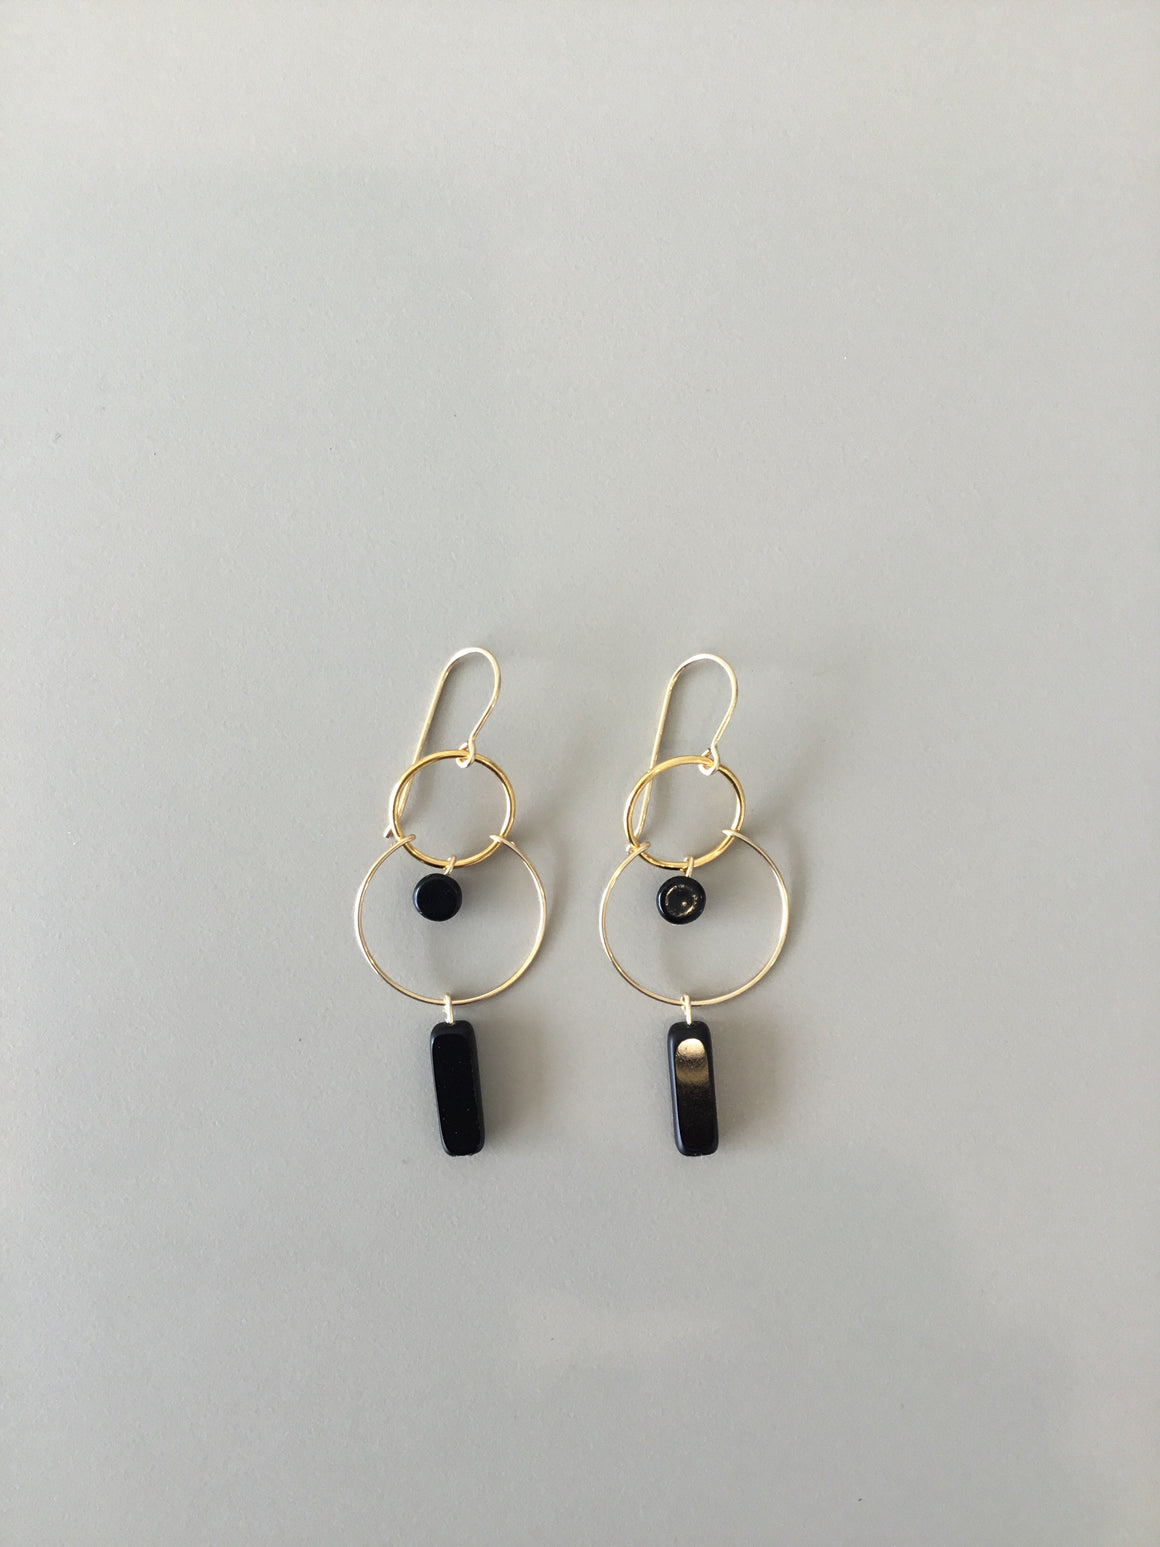 I. Ronni Kappos black rectangle hoop earrings